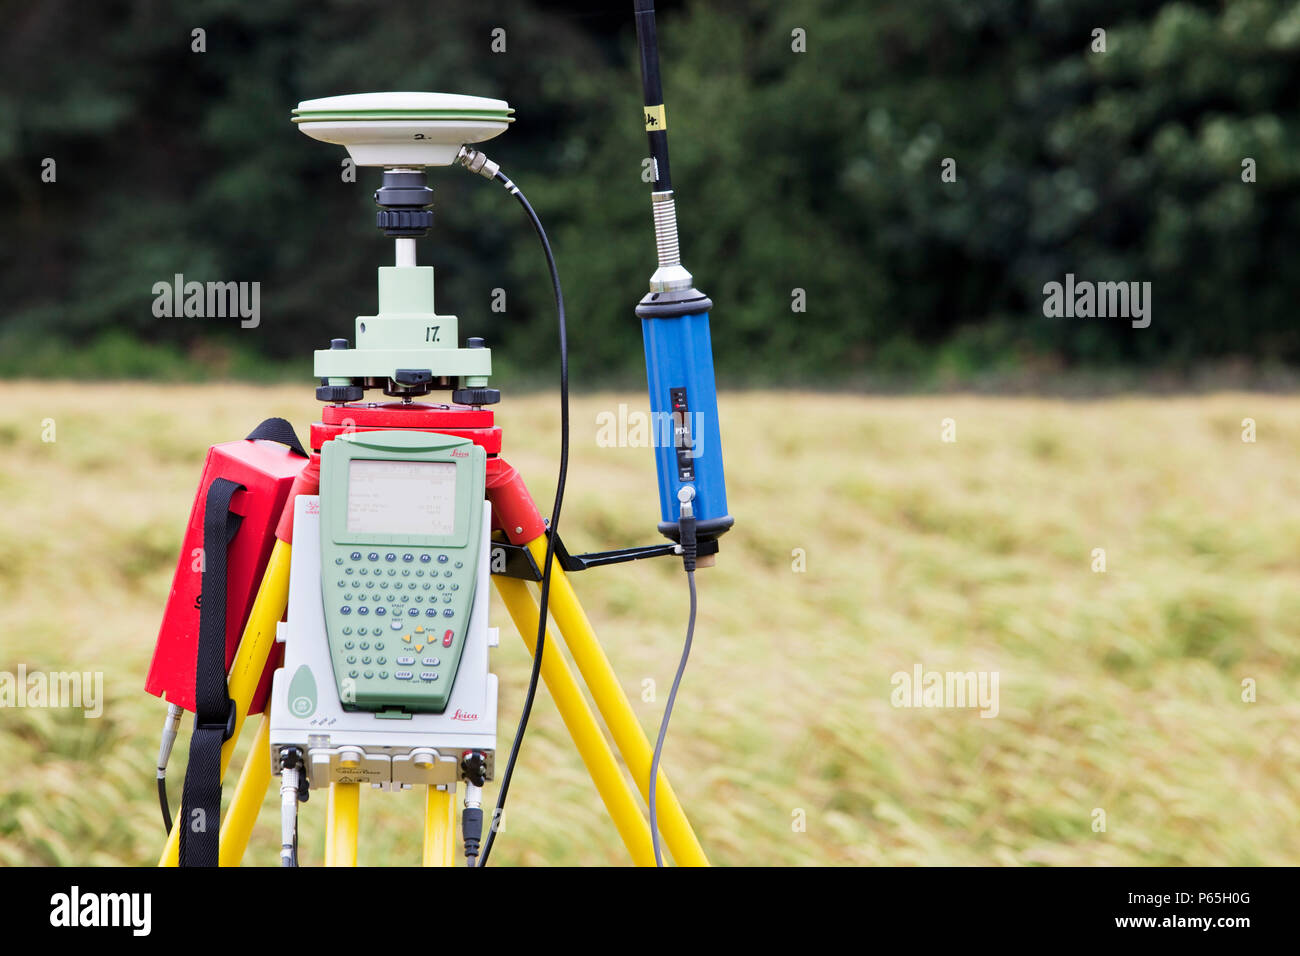 Differential Gps Stock Photos & Differential Gps Stock Images - Alamy